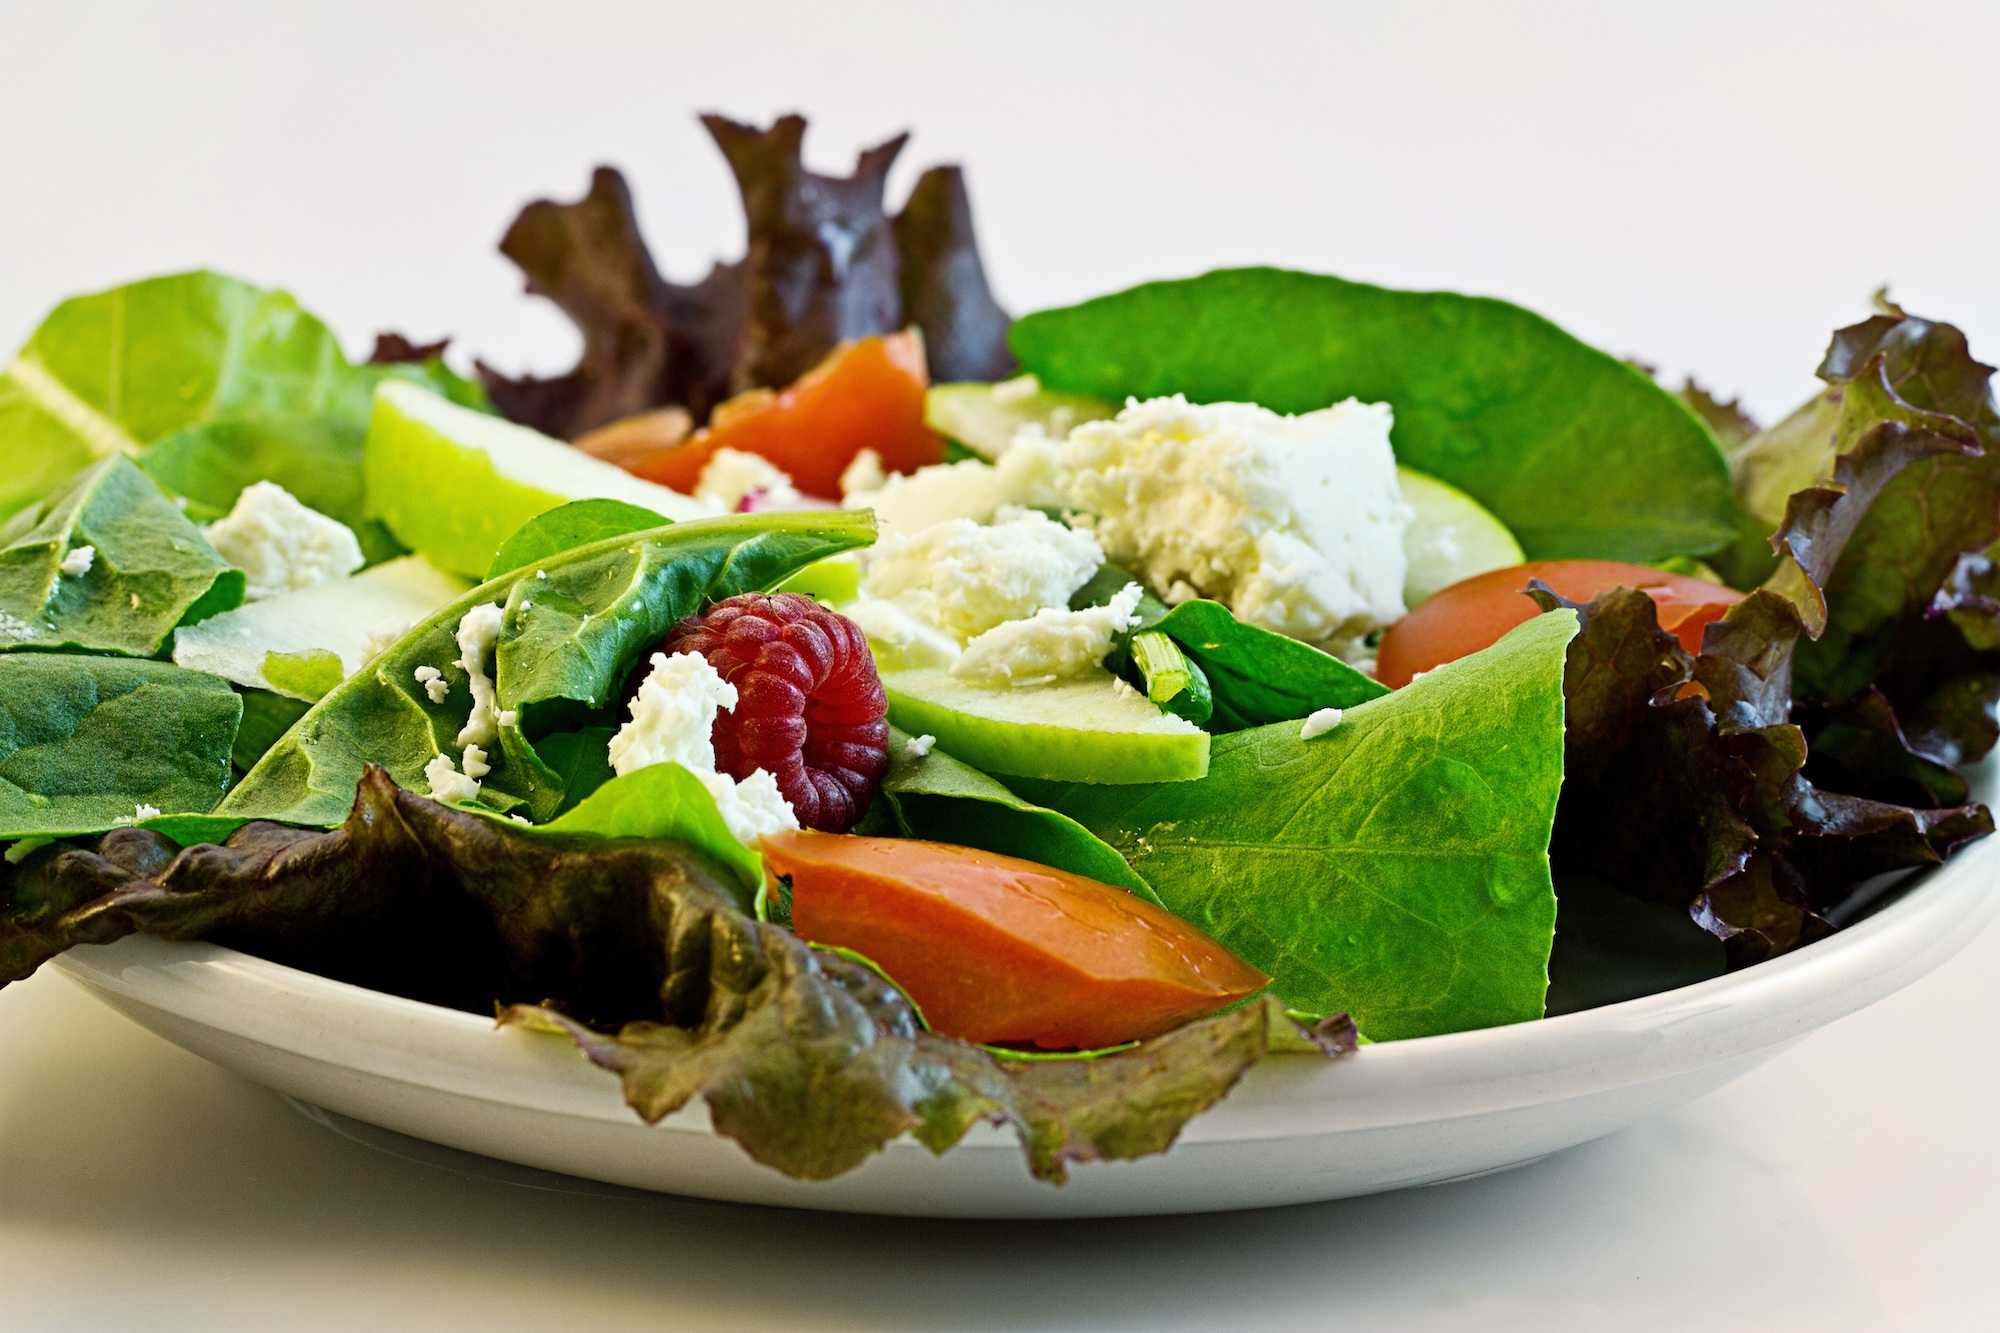 salad-fresh-food-diet-54322